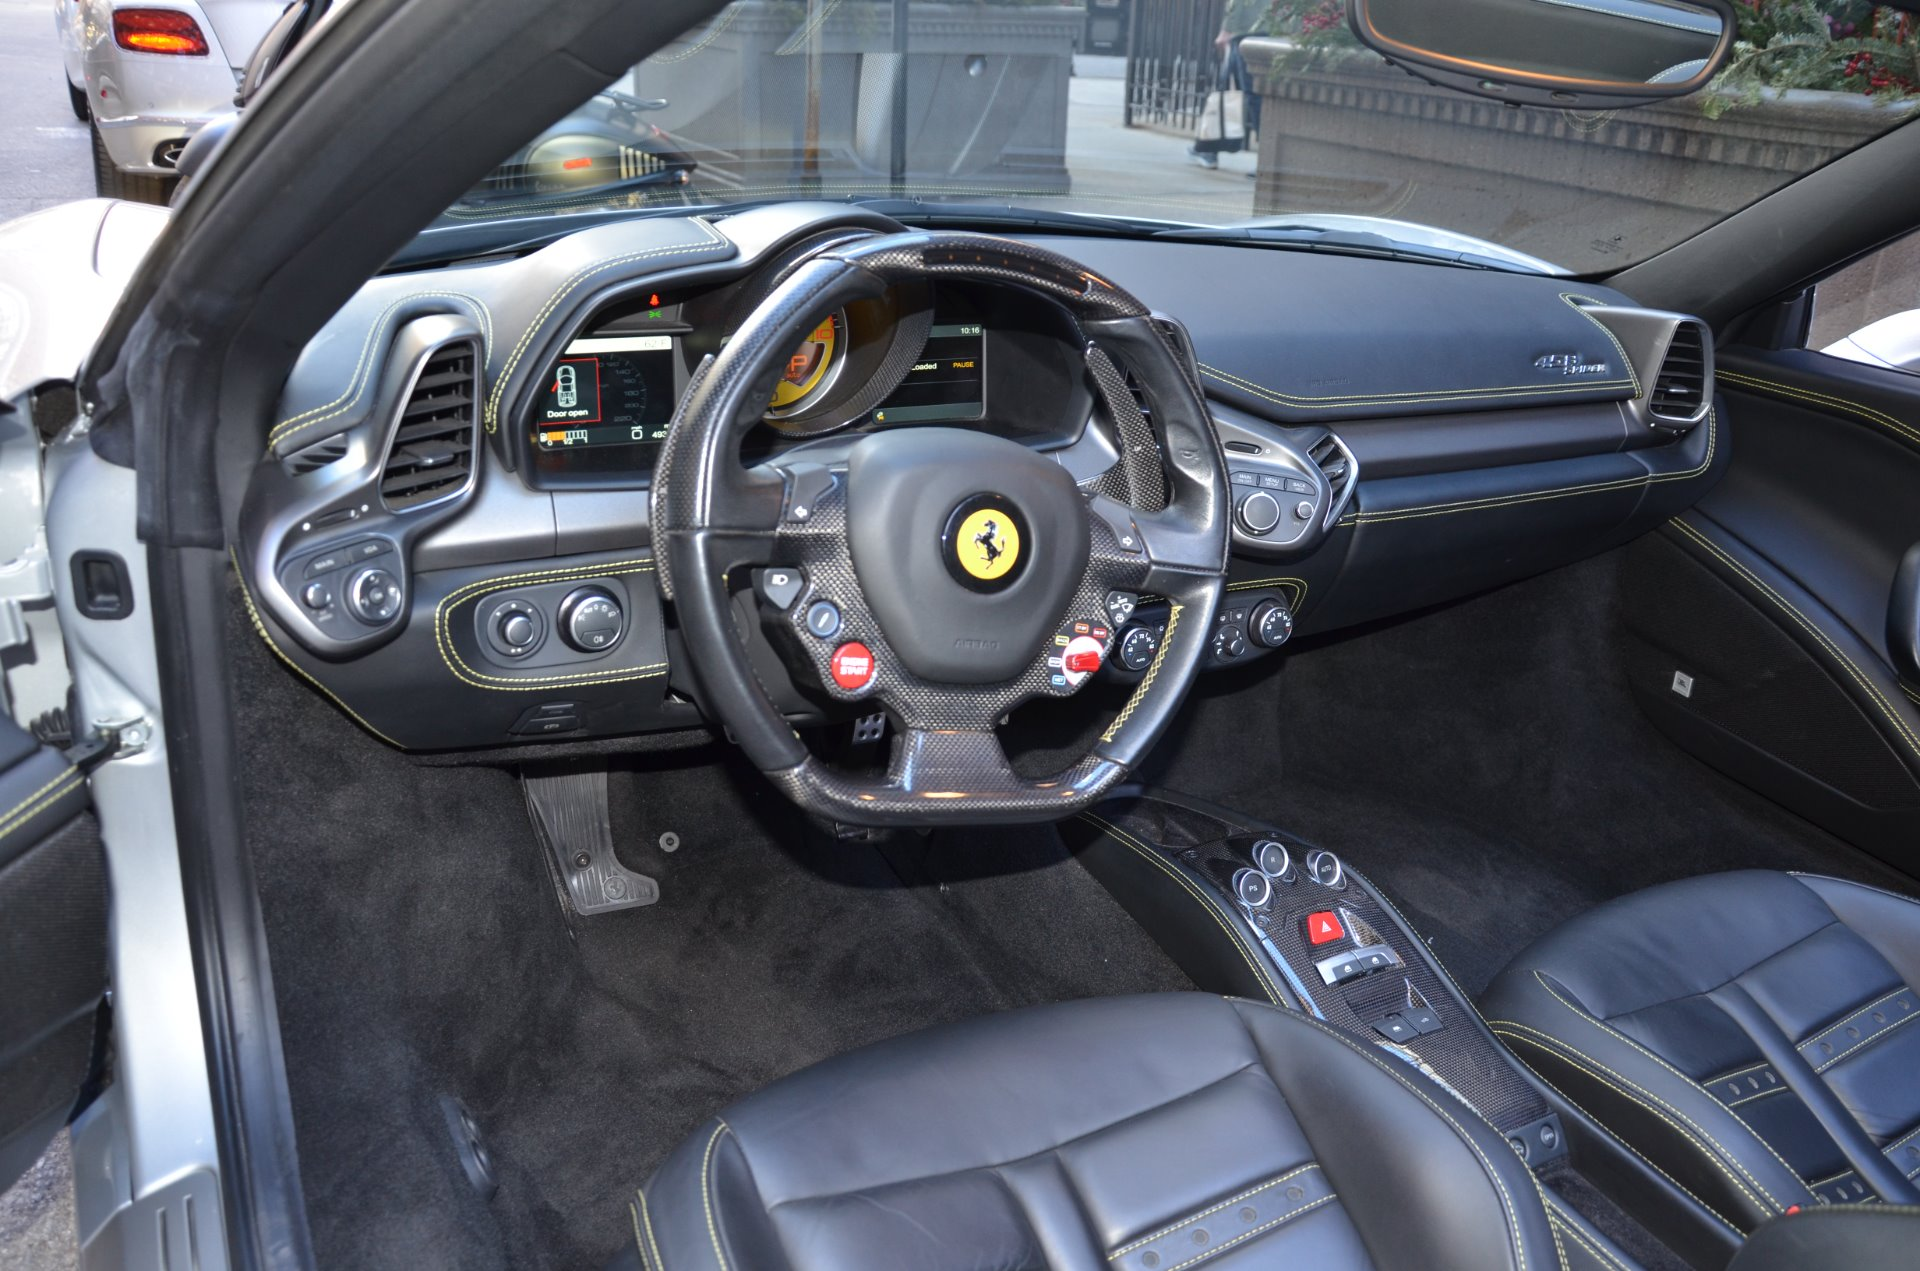 2013 ferrari 458 spider stock r376b for sale near chicago il used 2013 ferrari 458 spider chicago il vanachro Image collections